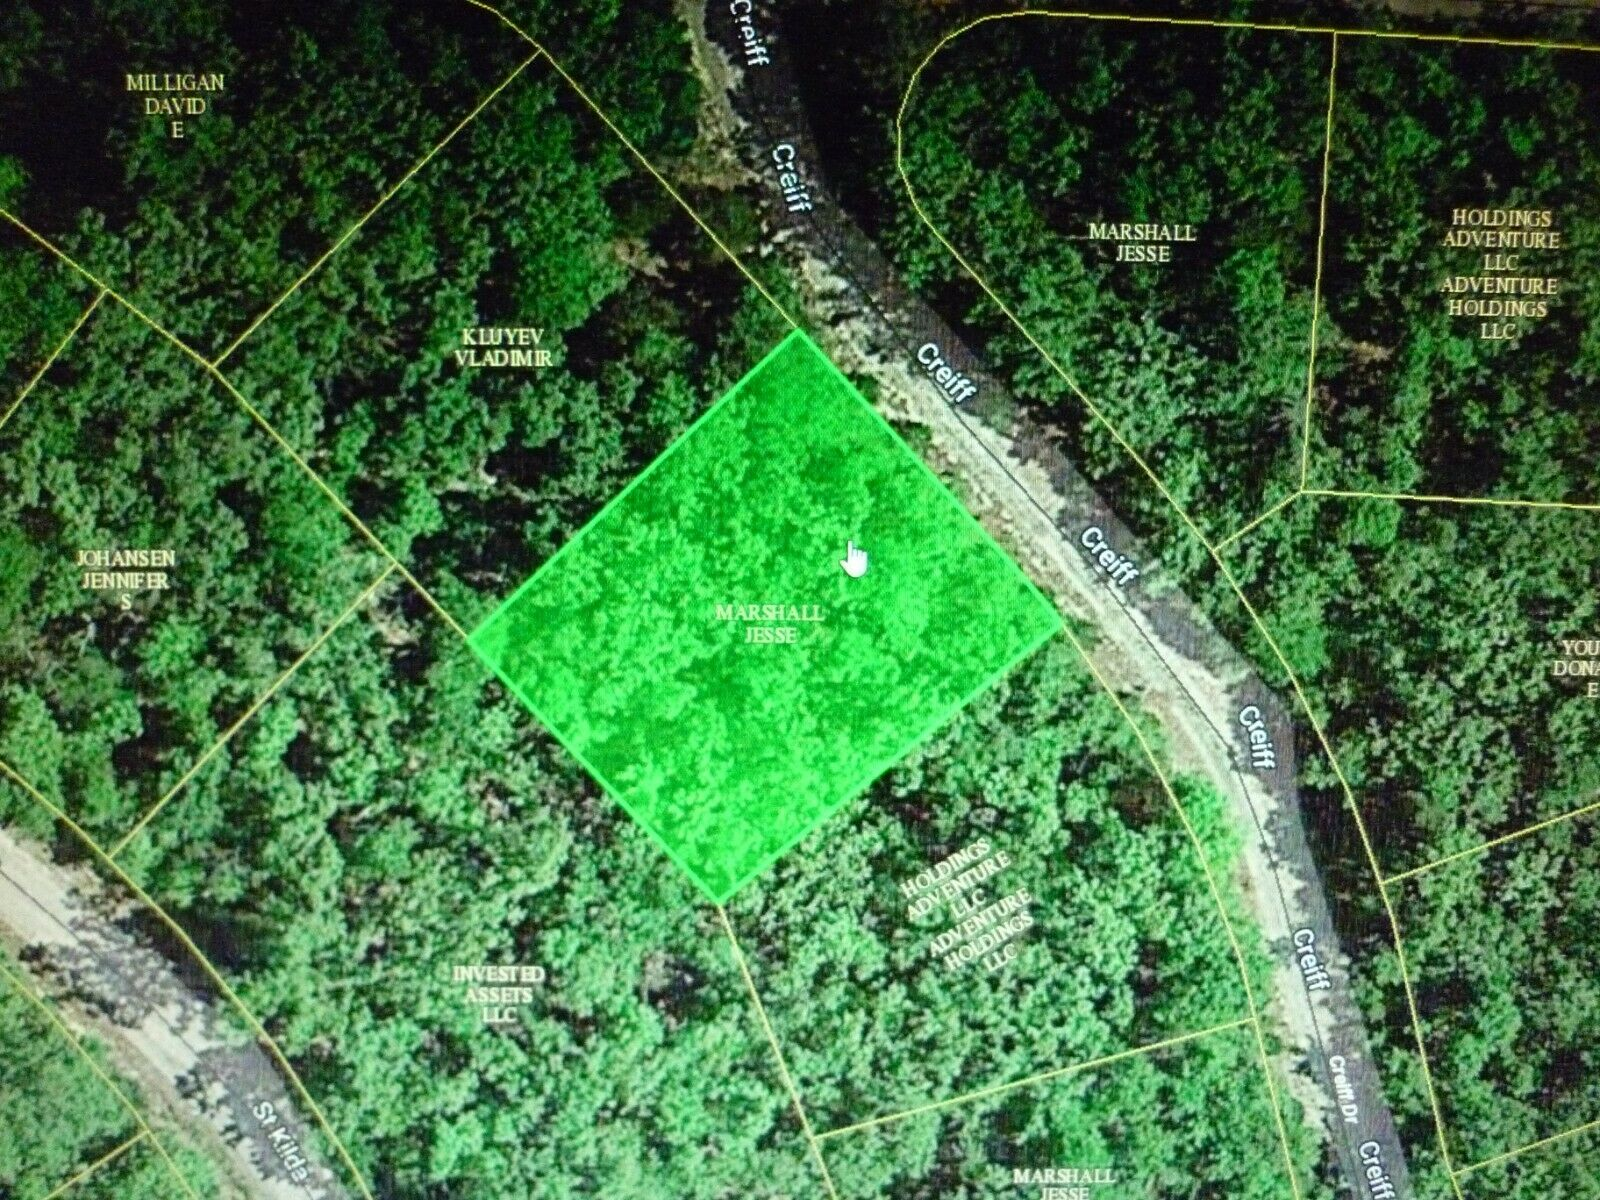 10209 Sq Ft .2344 Ac Briarcliff, AR 1/4 Mile To Norfork Lake POWER 300 FT AWAY - $27.00